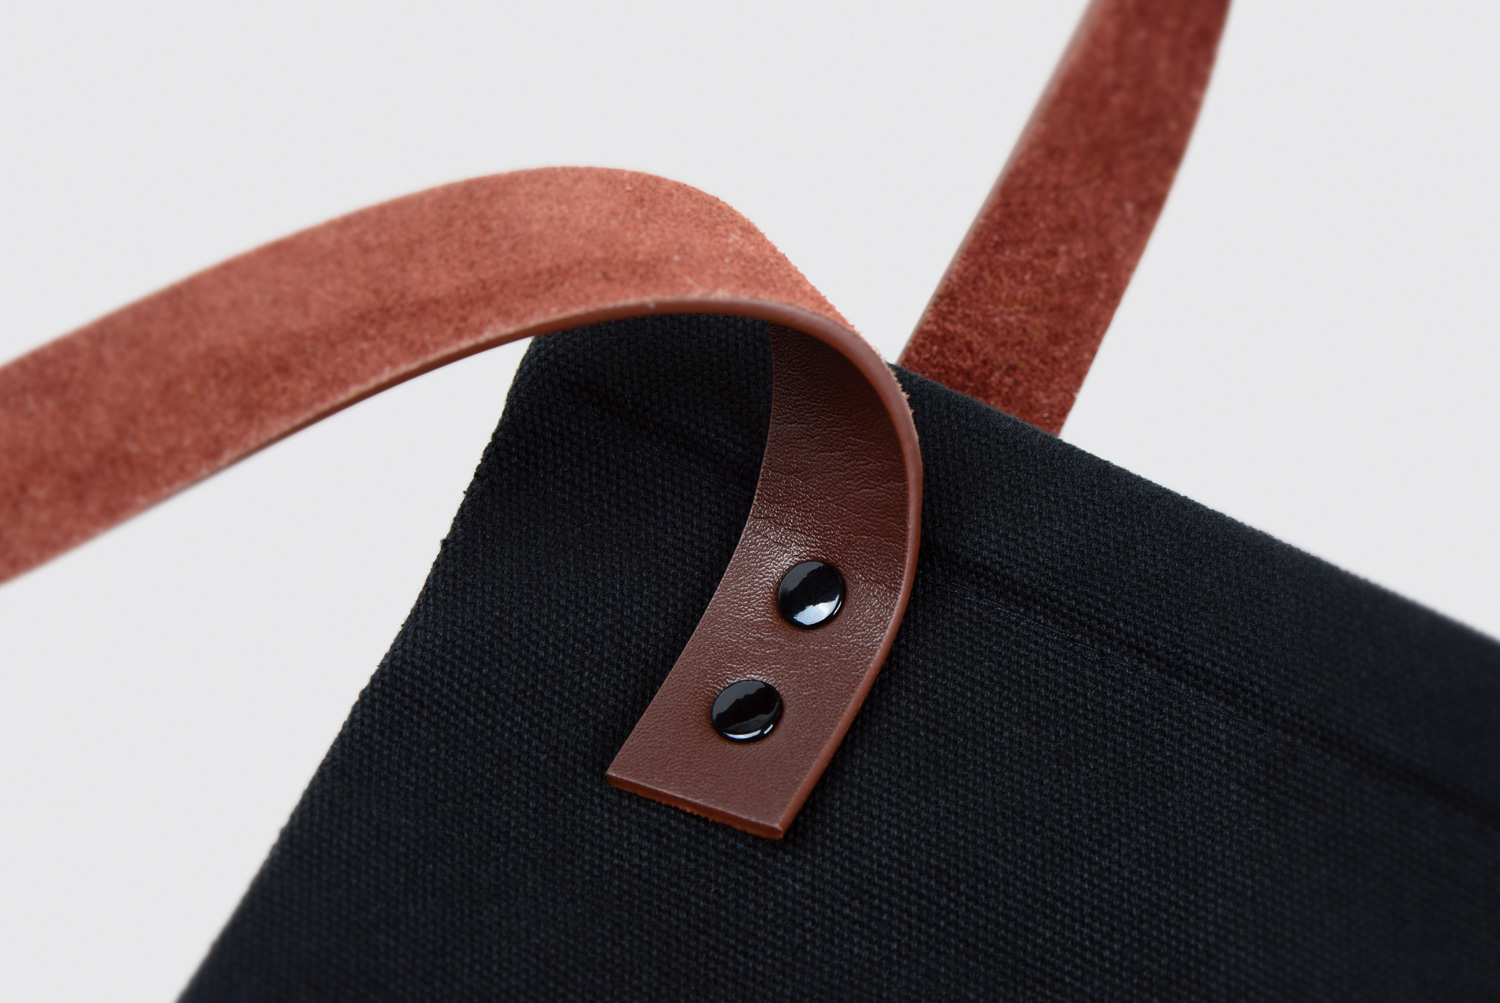 Progress Packaging Rathbone Square Tote Bag Handles Leather Rivets